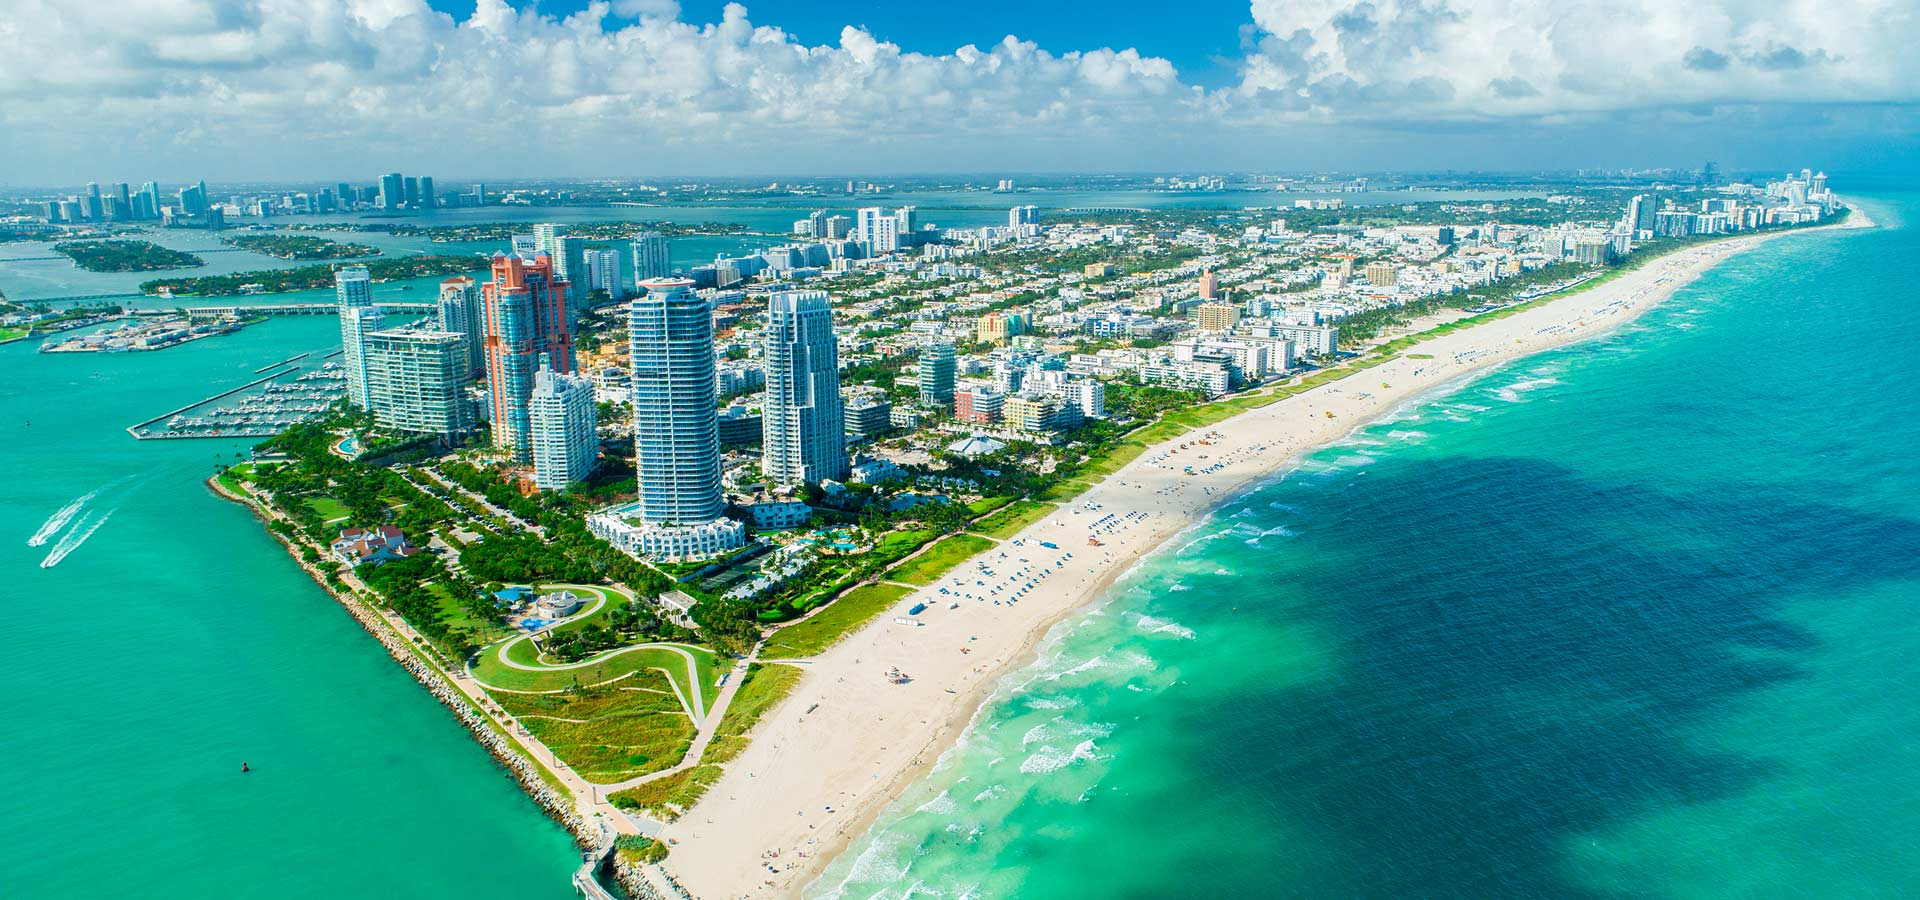 5 Reasons to Bag This Low-Cost Miami Flight Deal